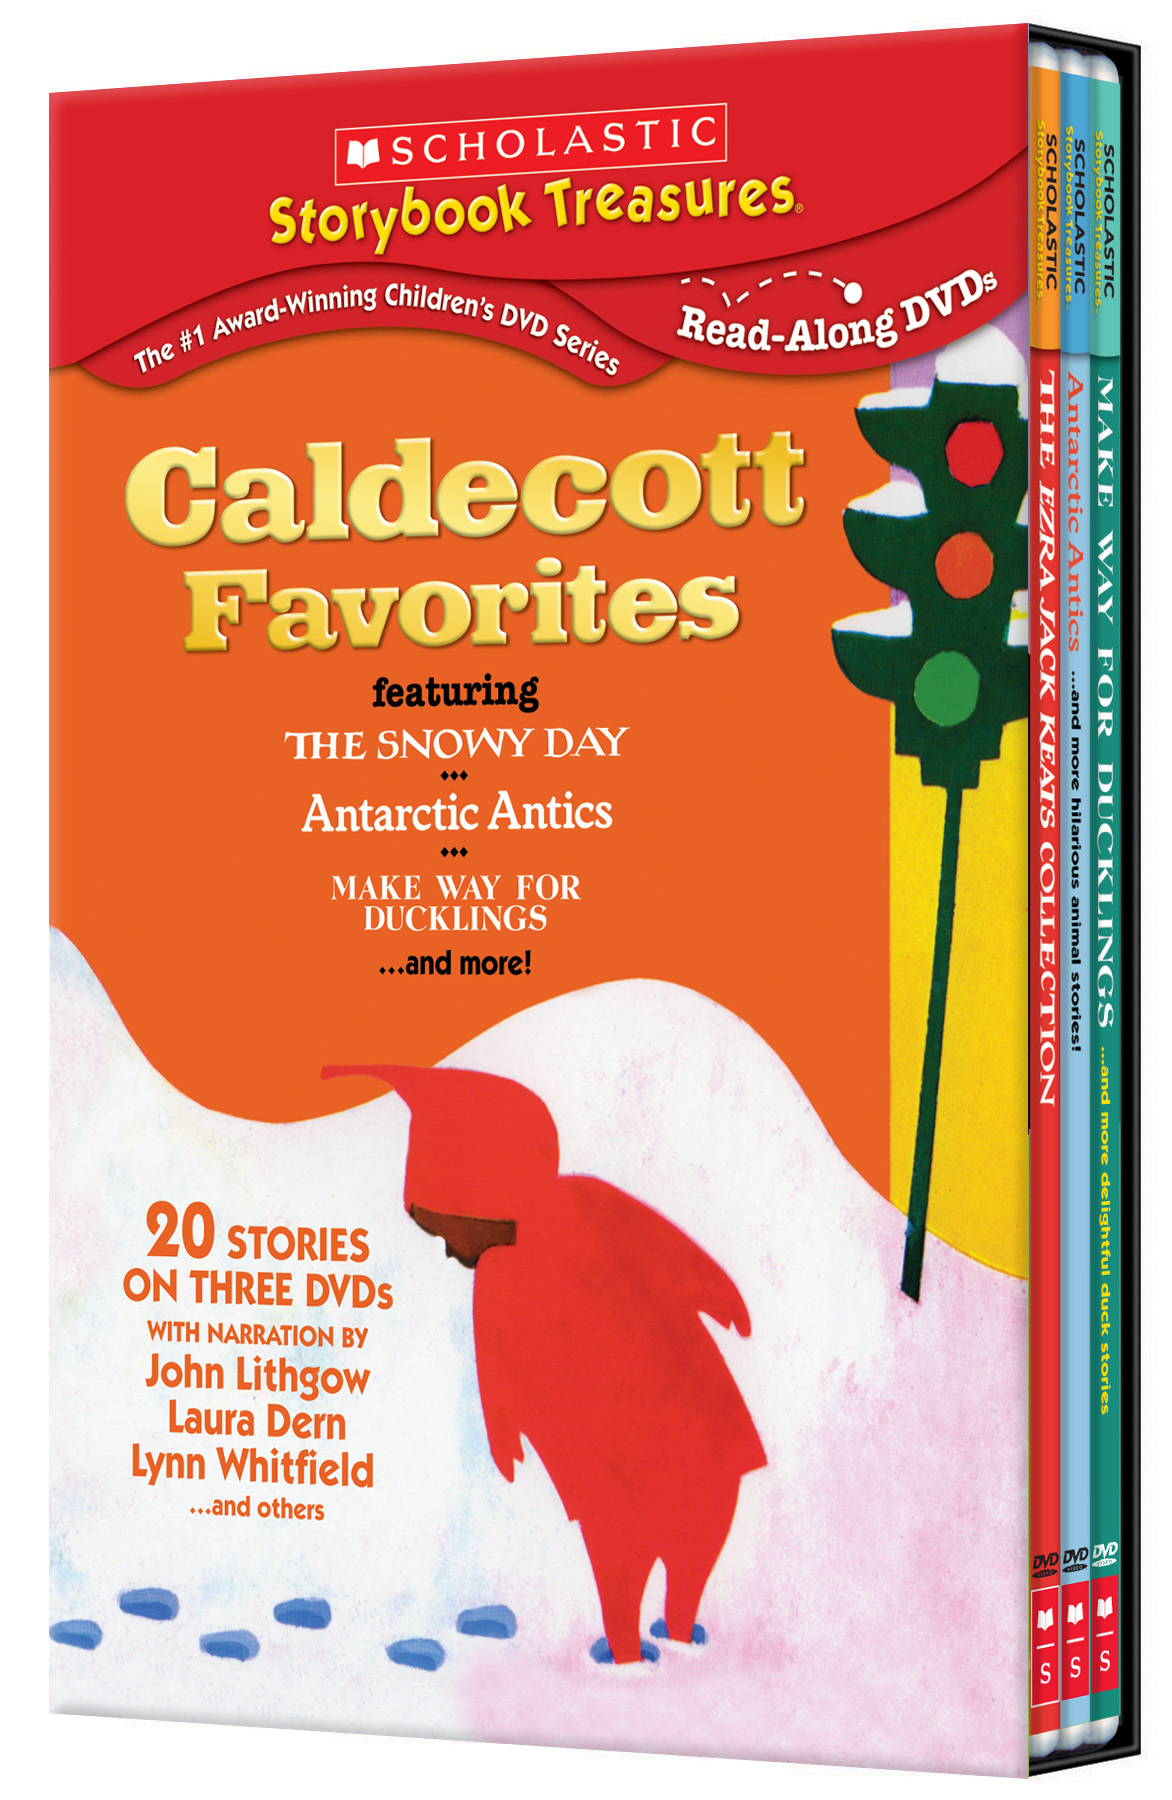 Caldecott Favorites Featuring The Snowy Day 3 Pk Dvd